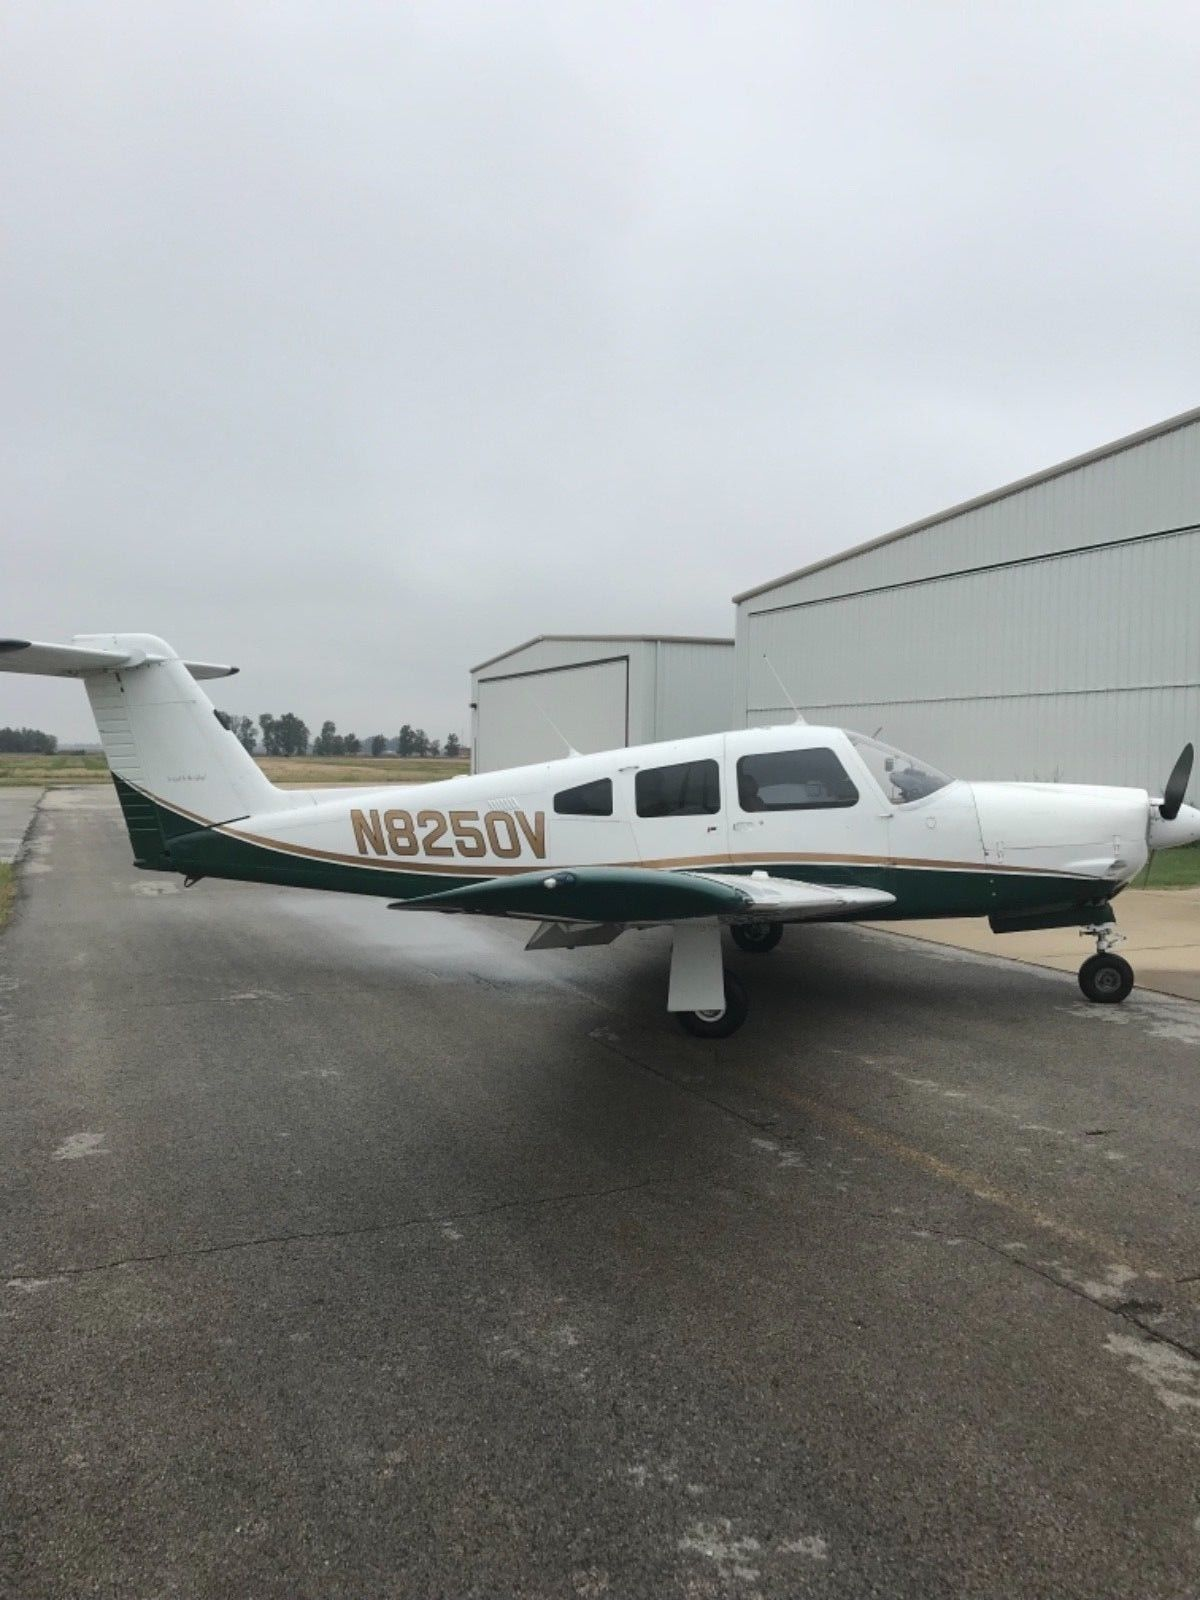 new parts 1980 Piper Arrow IV aircraft for sale